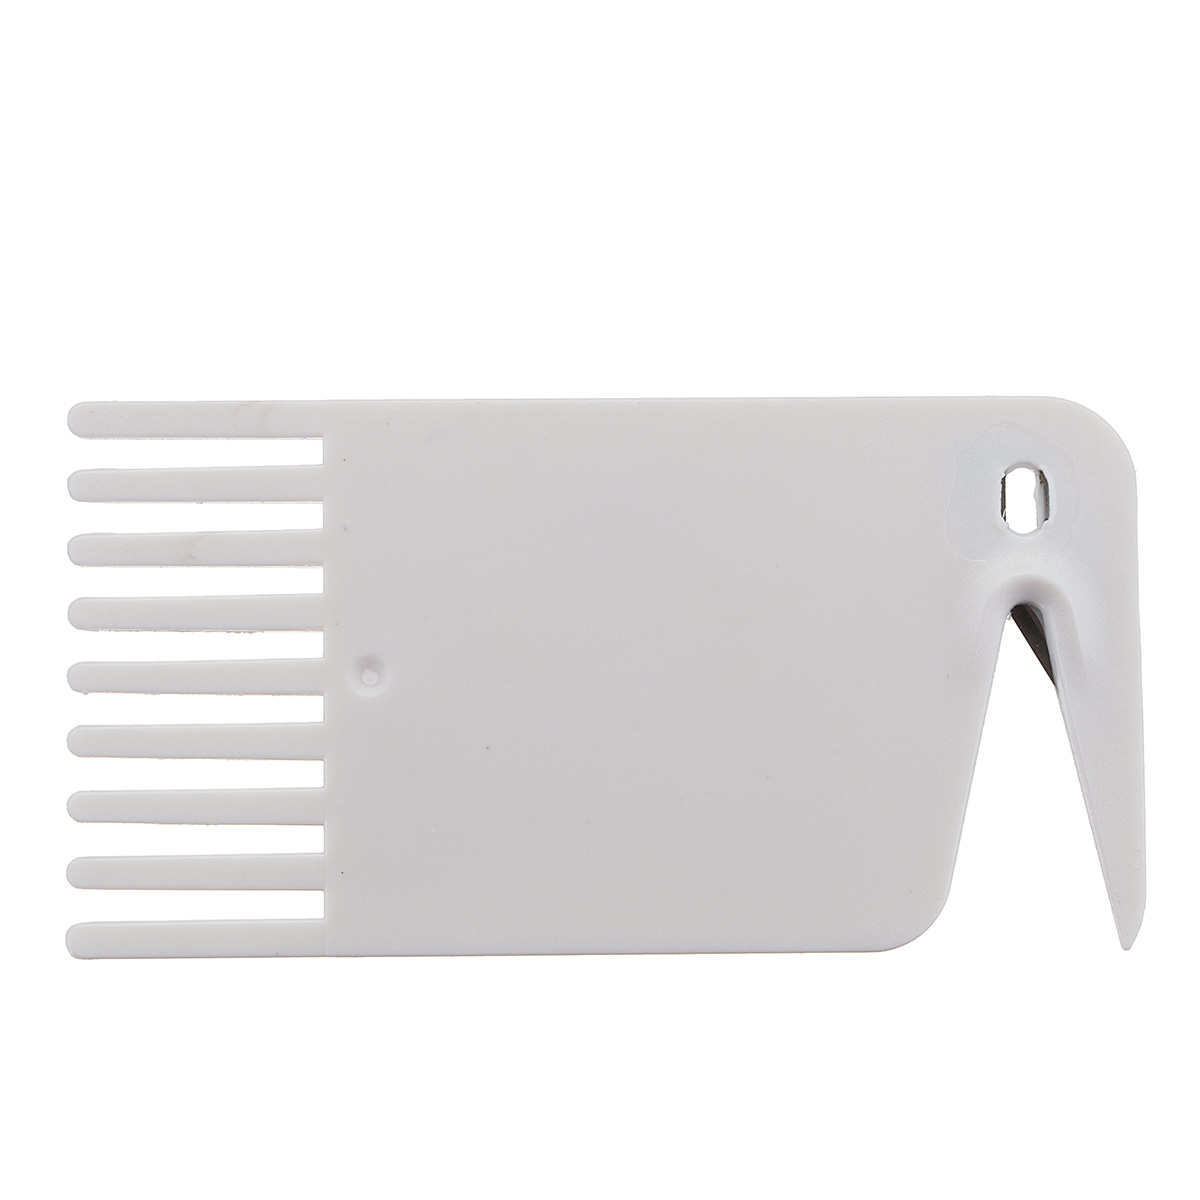 Filter Main Side Brush Mop Cloth For Xiaomi for Roborock Robot S50 S51 S55 Durable